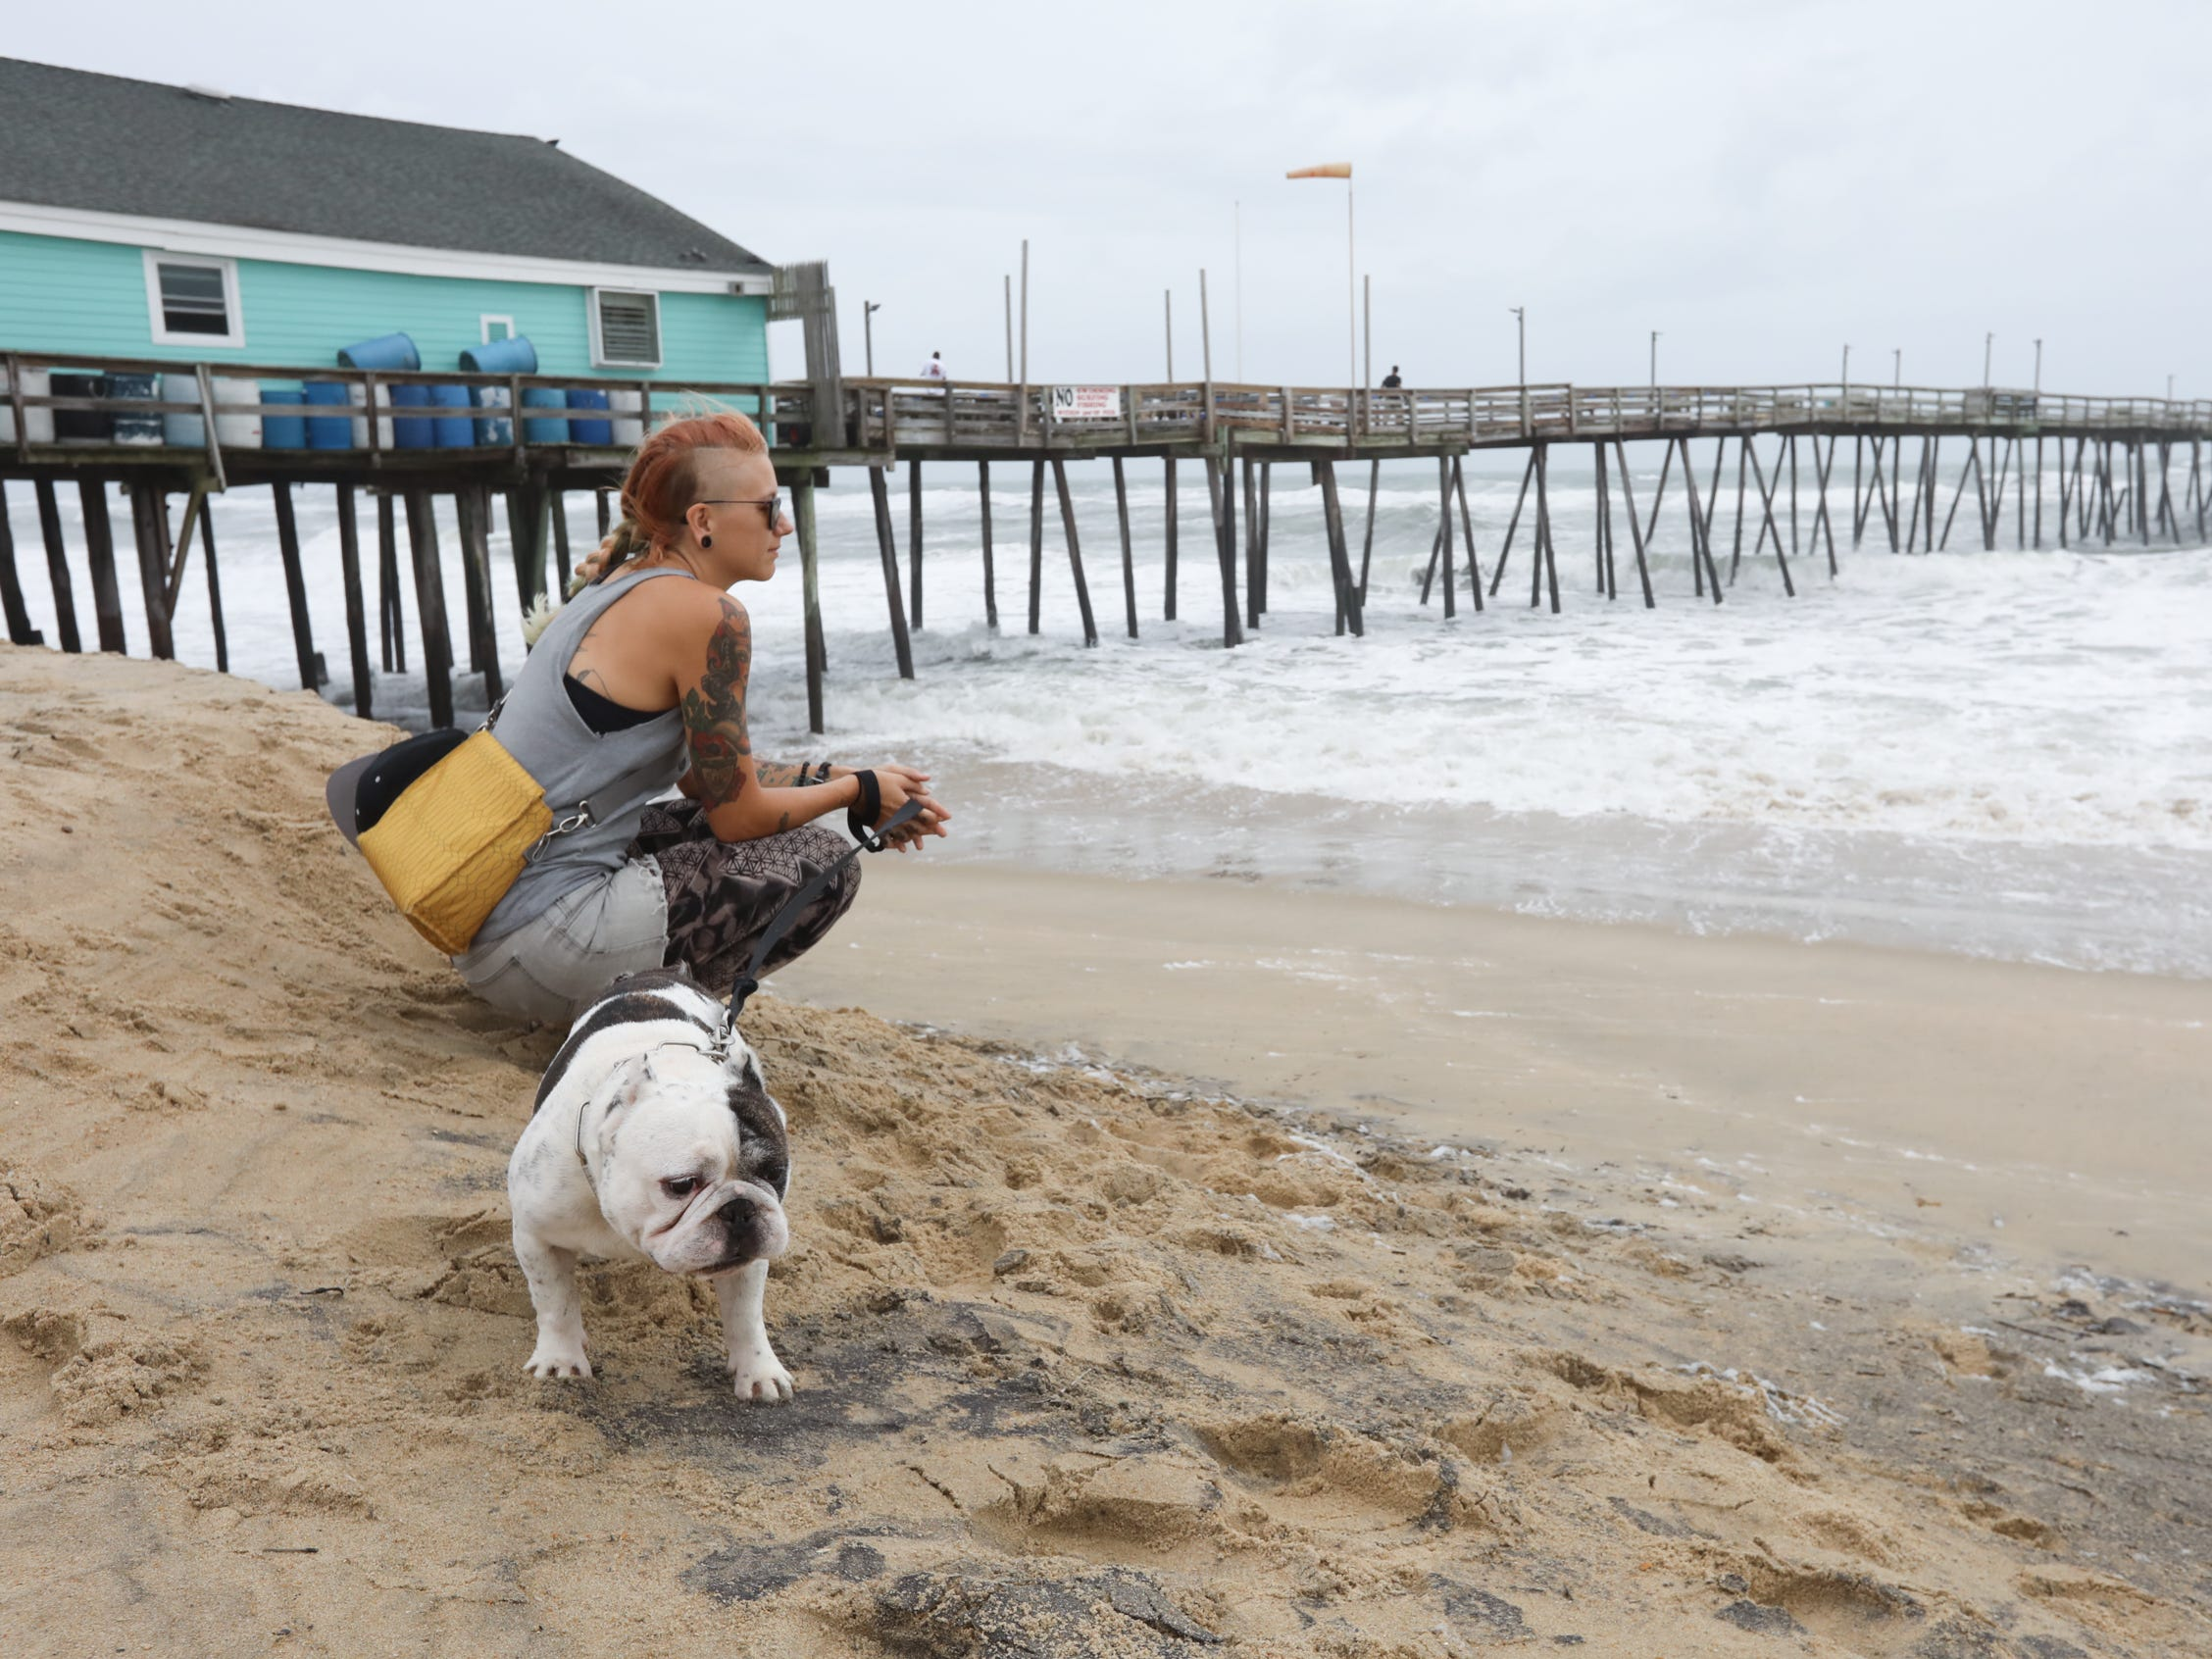 Amanda Daniels and her dog Dude on the beach in Kill Devil Hills, North Carolina on Sept. 14, 2018.